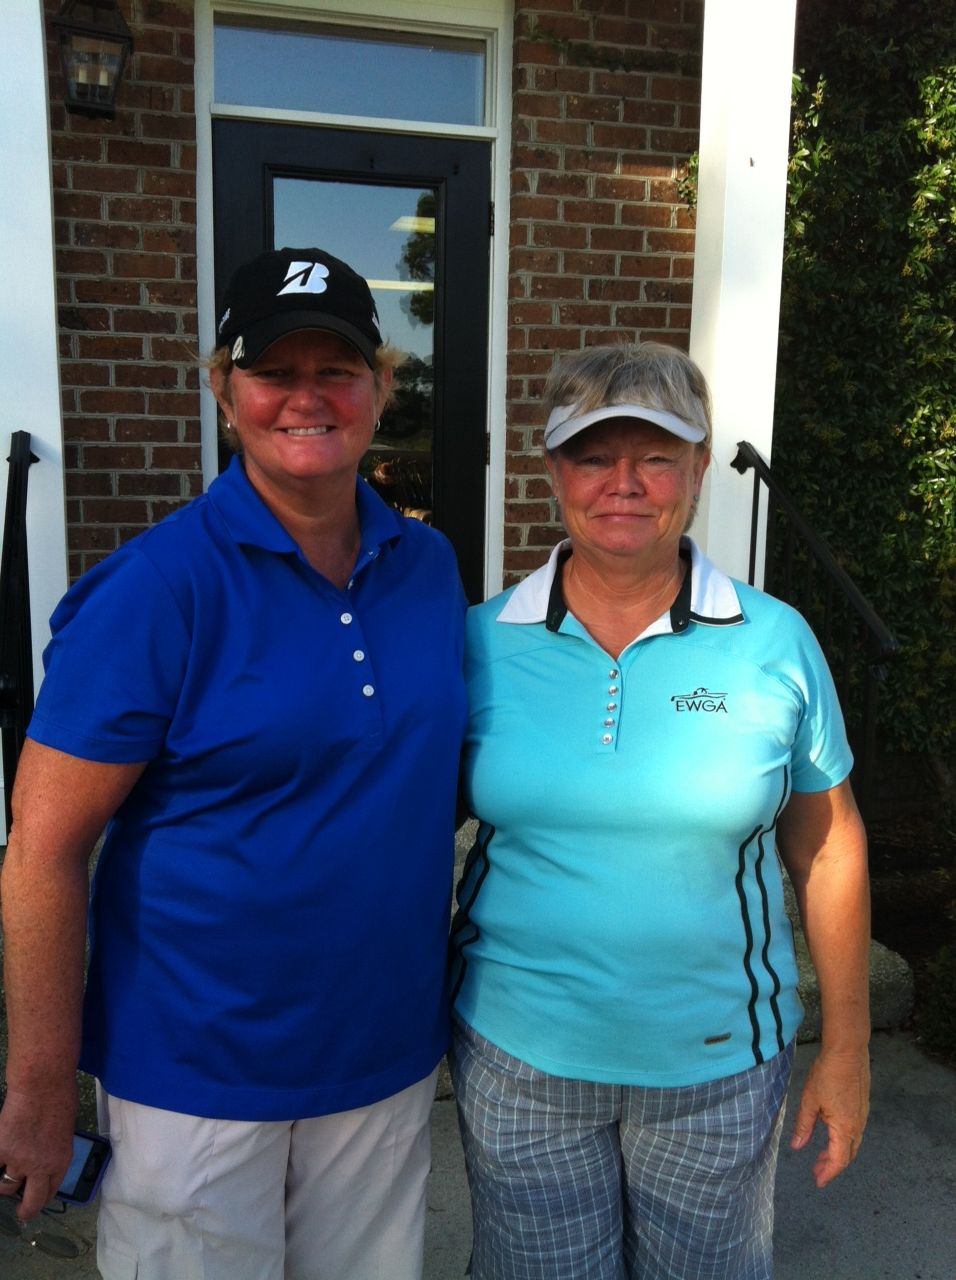 Dot T. From EWGA Huntsville And Becky Macaluso From EWGA